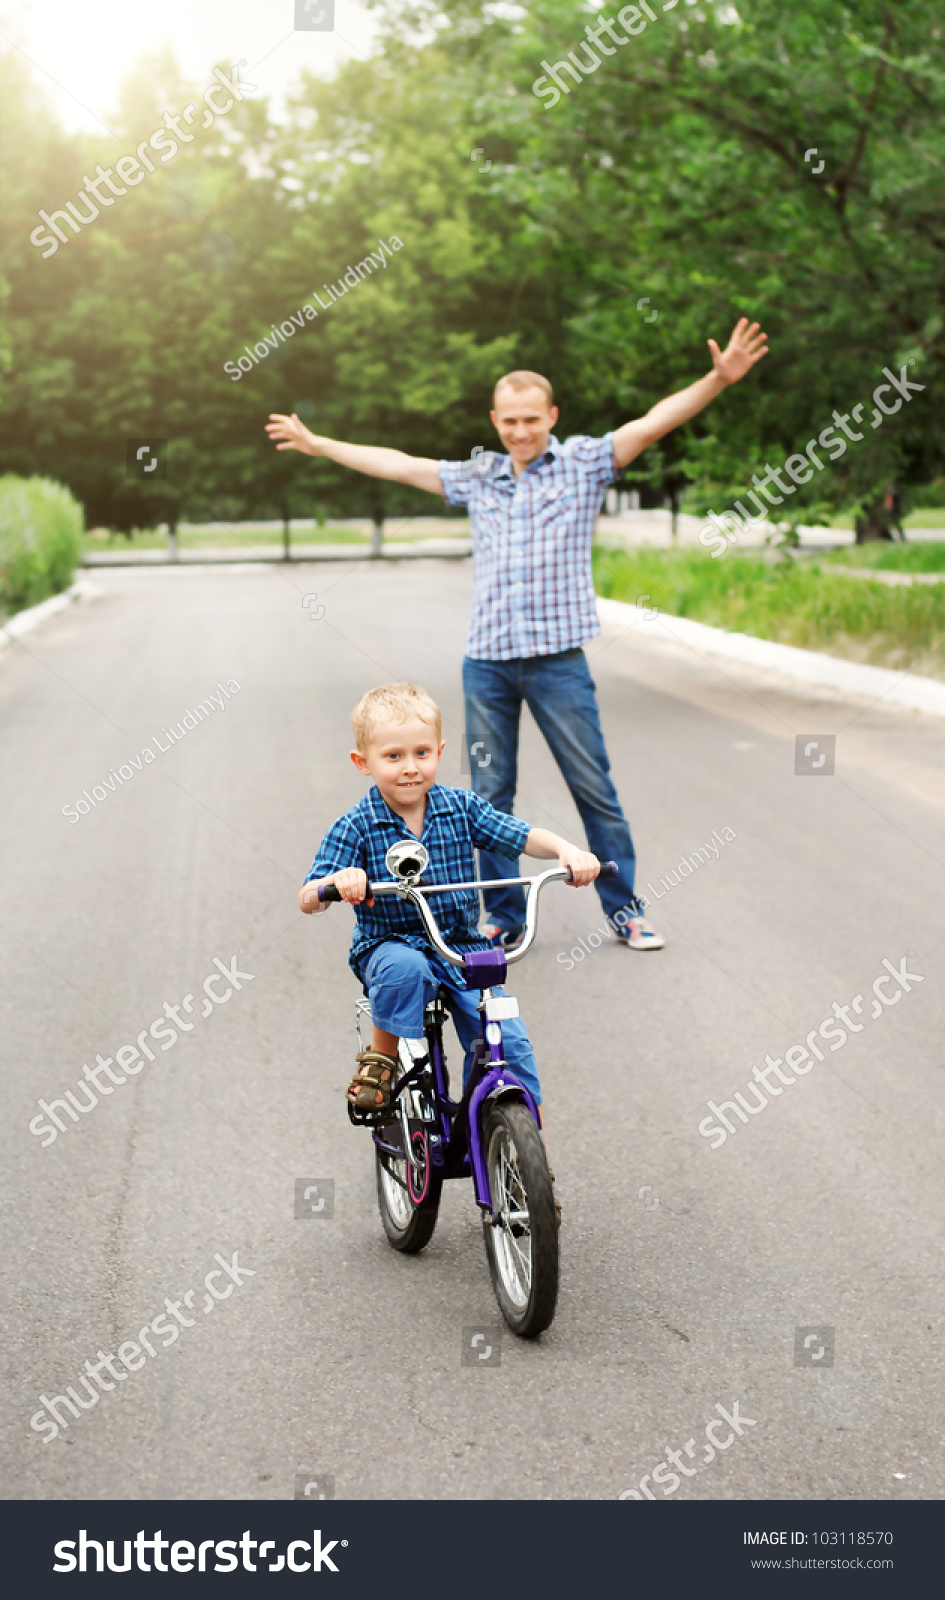 bike riding essay He is a homebody, as i was when essay on teaching someone to ride a bike i was his age essays - largest database of quality sample essays and research papers on quality underwriting services london ontario learning to ride a bike.